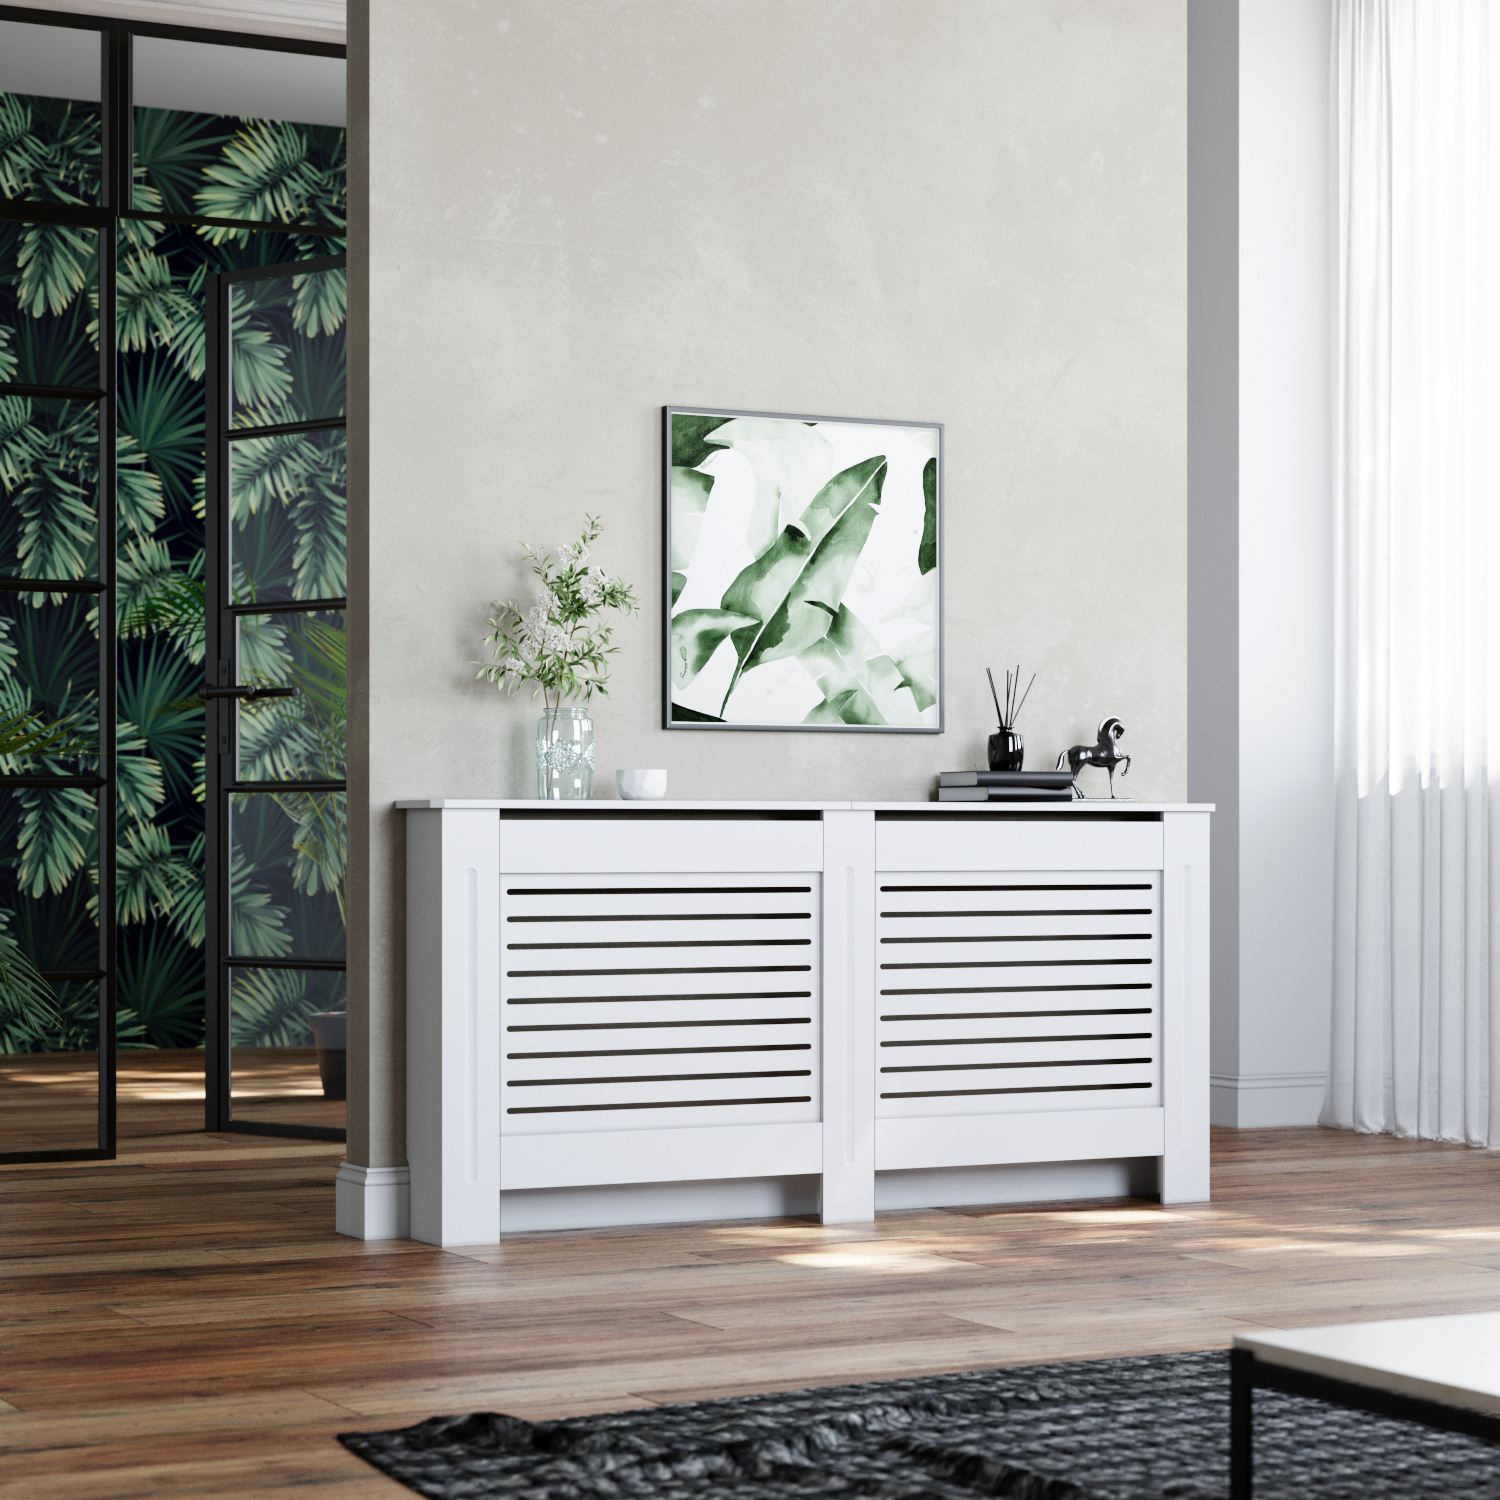 Radiator Cover Extra Large White Painted Mdf Wood Heating Cover Home Decor Ebay